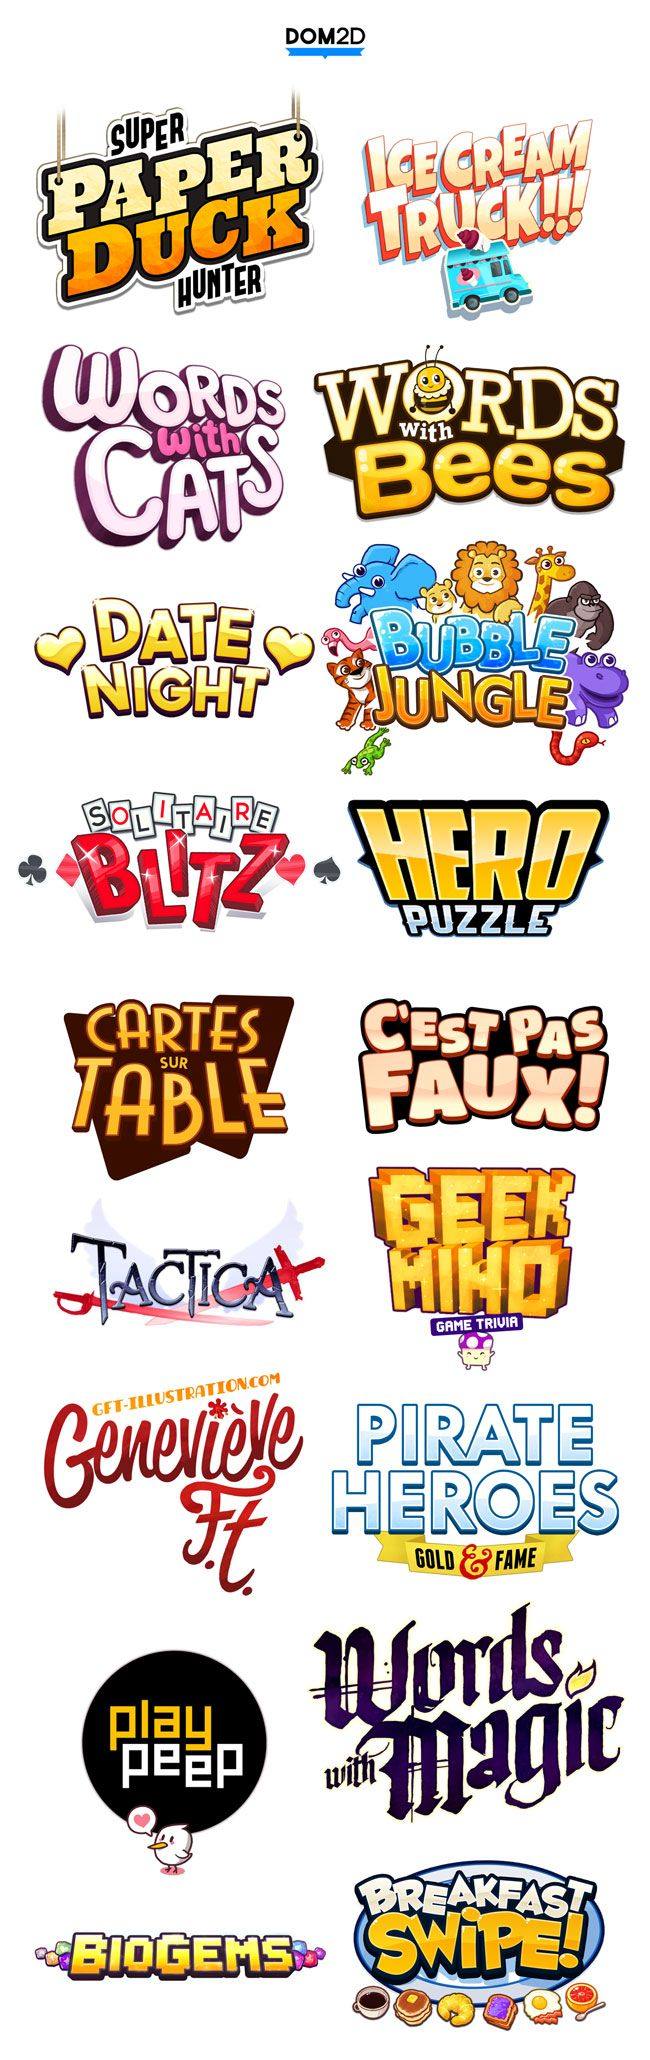 AWESOME game cartoony funky inspiring colorful cheerful funny logo inspiration…